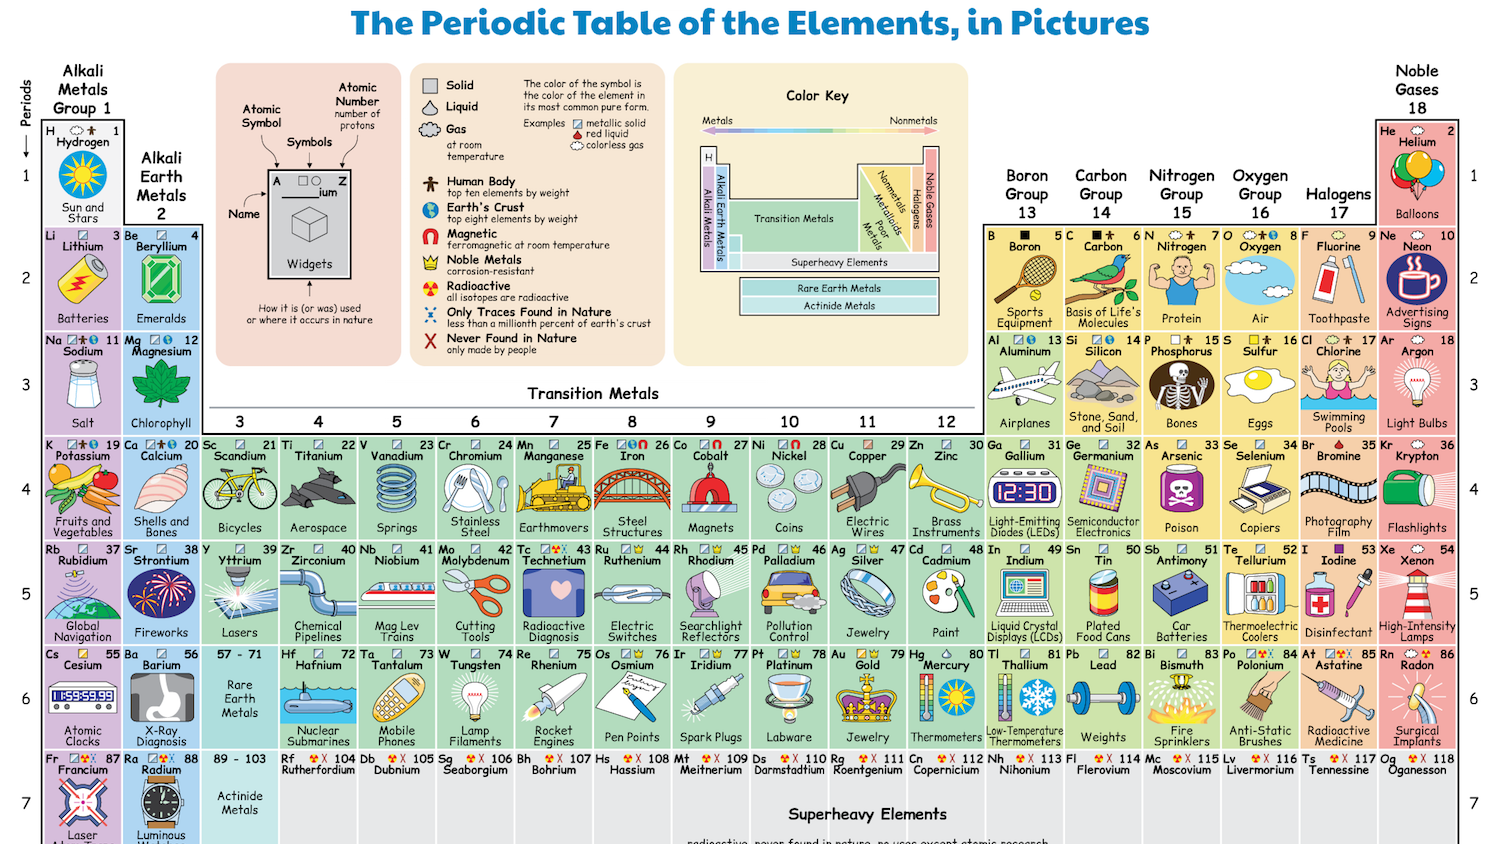 This illustrated periodic table shows how we regularly interact with this illustrated periodic table shows how we regularly interact with each element brain teaser games brain teasers and interesting facts urtaz Image collections